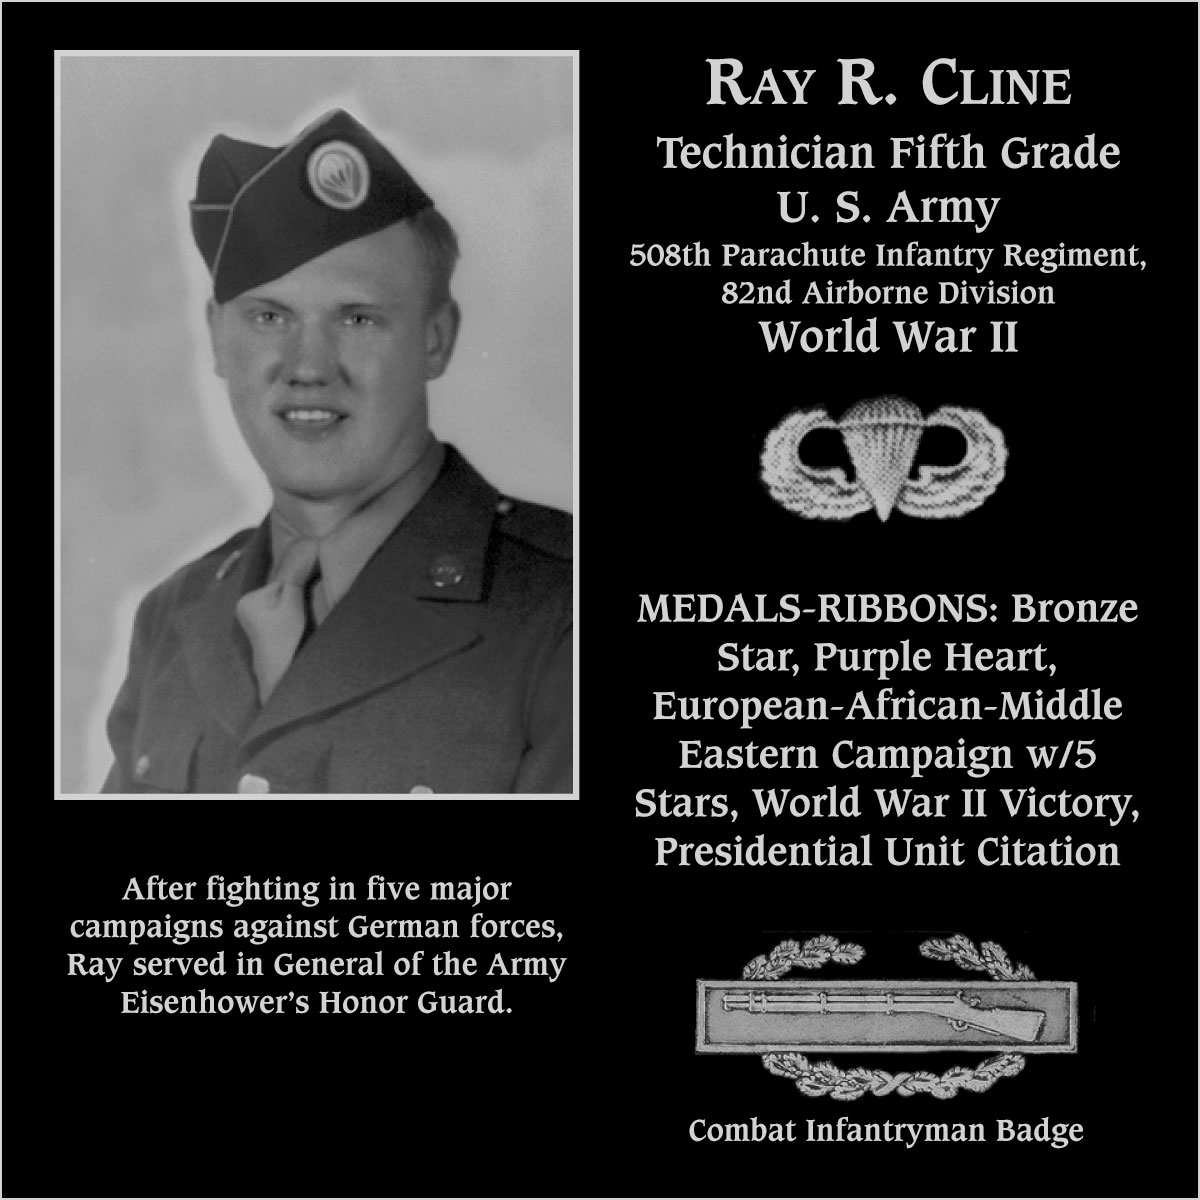 Ray R. Cline